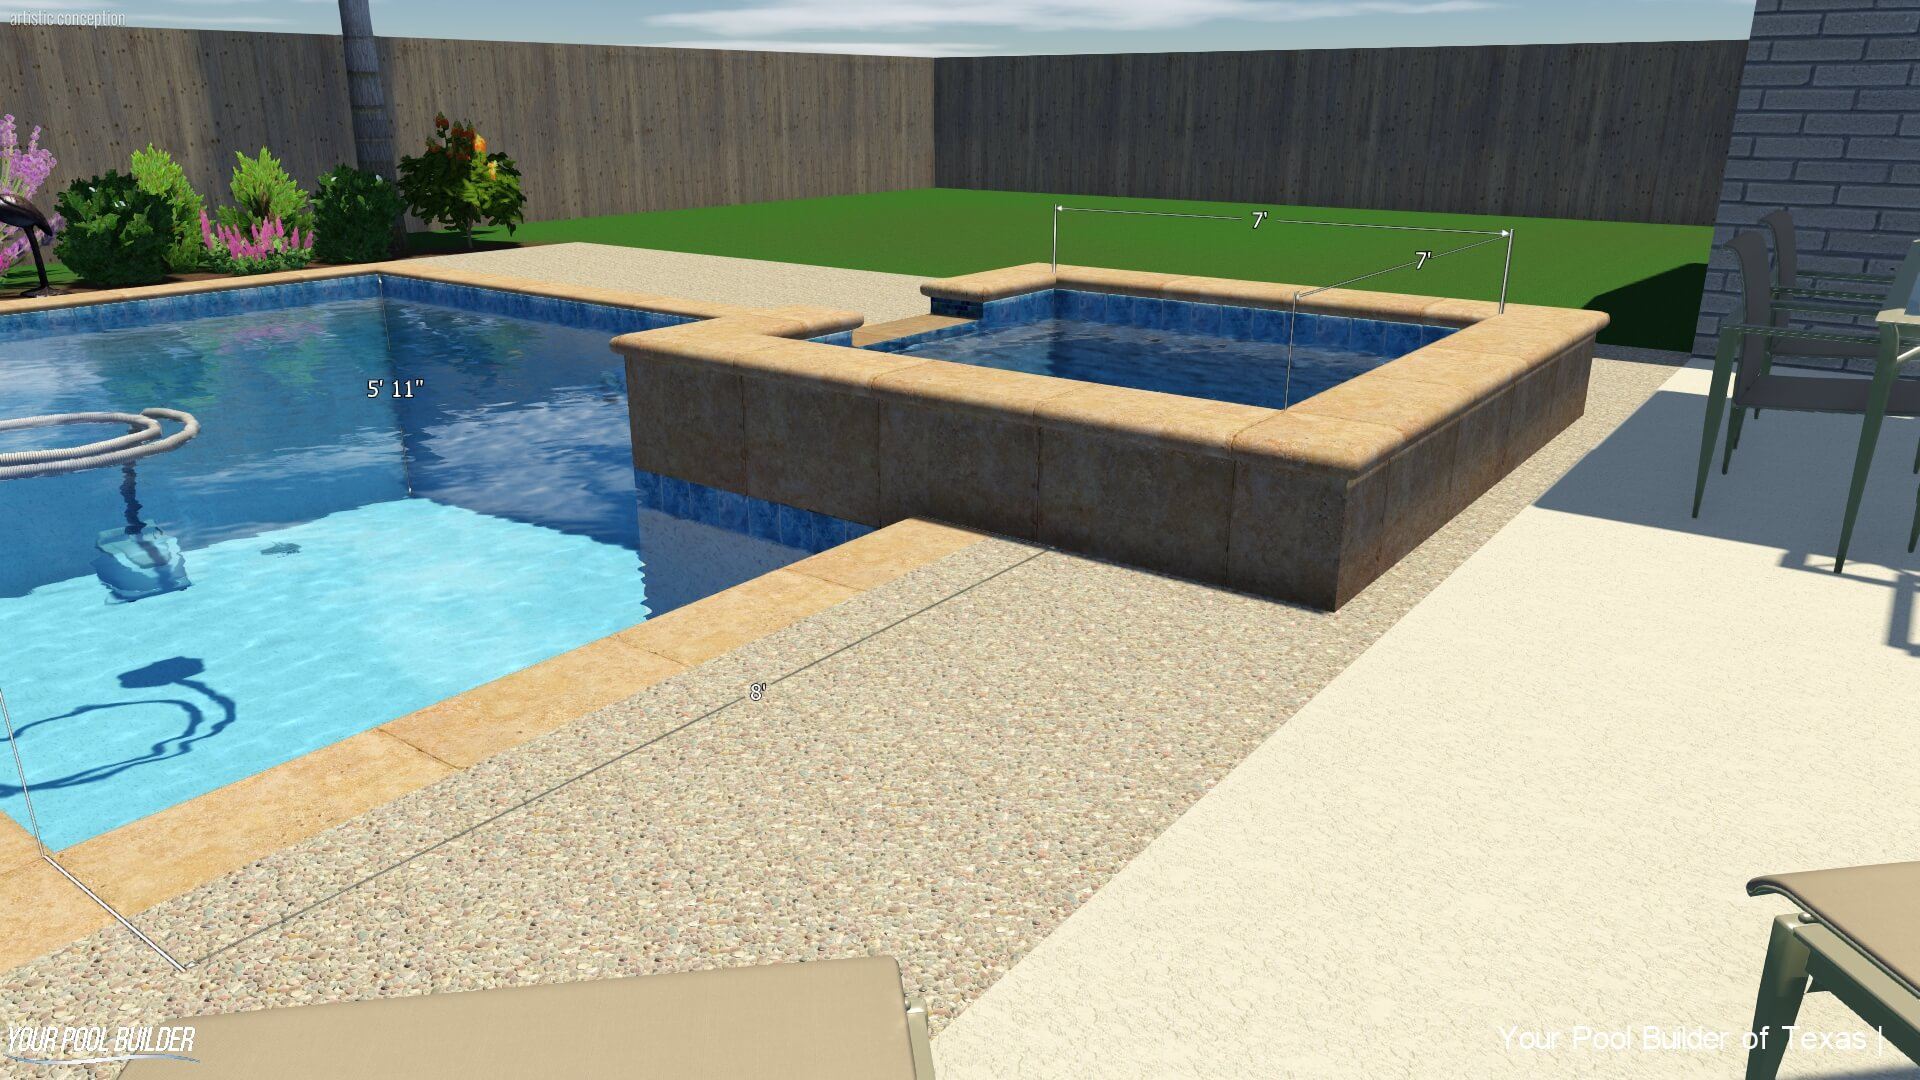 Jacuzzi Pool In Ground Inground Pool Upgrades Cost Texas Swimming Pool Construction Prices